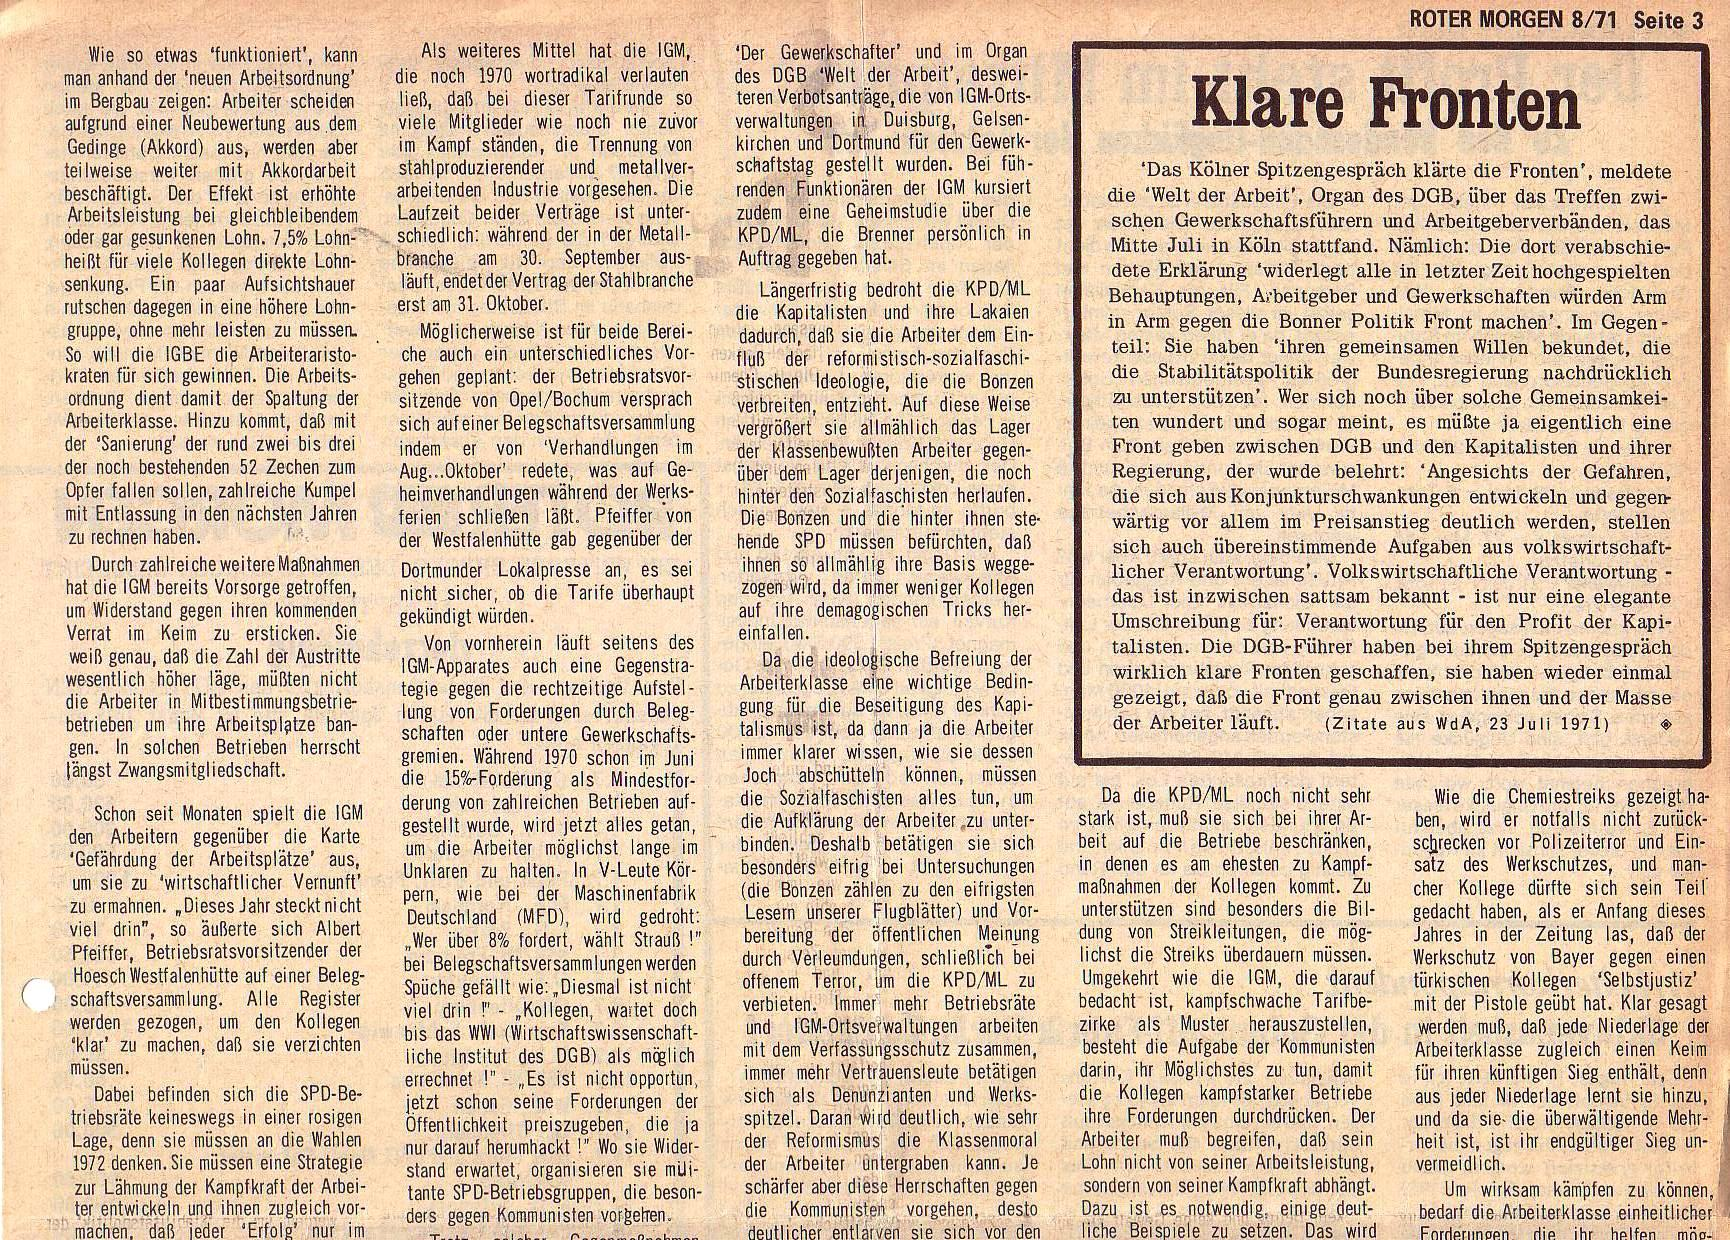 Roter Morgen, 5. Jg., August 1971, Nr. 8, Seite 3a